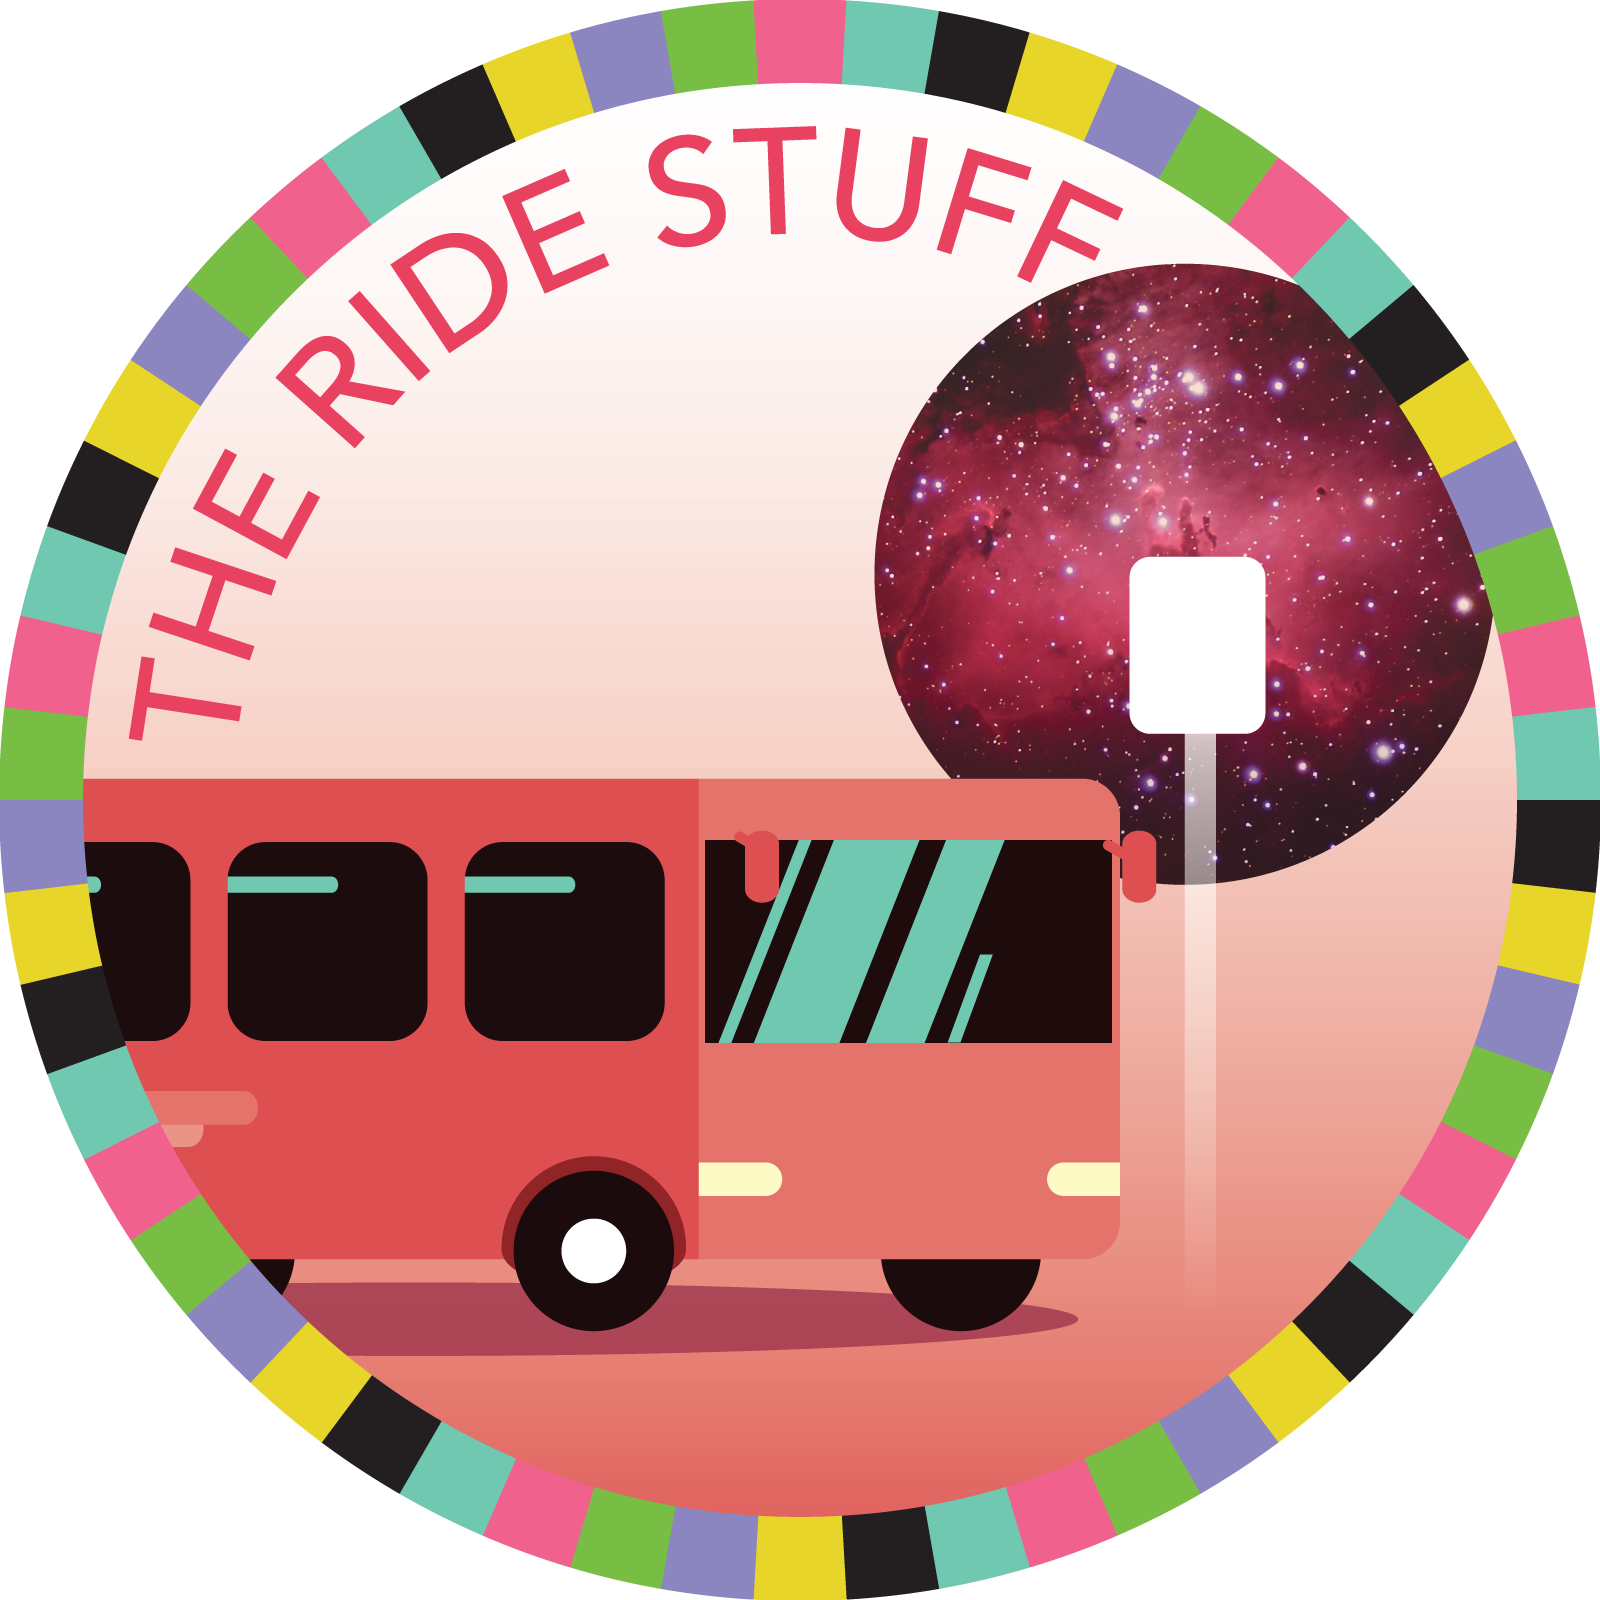 The Ride Stuff badge image